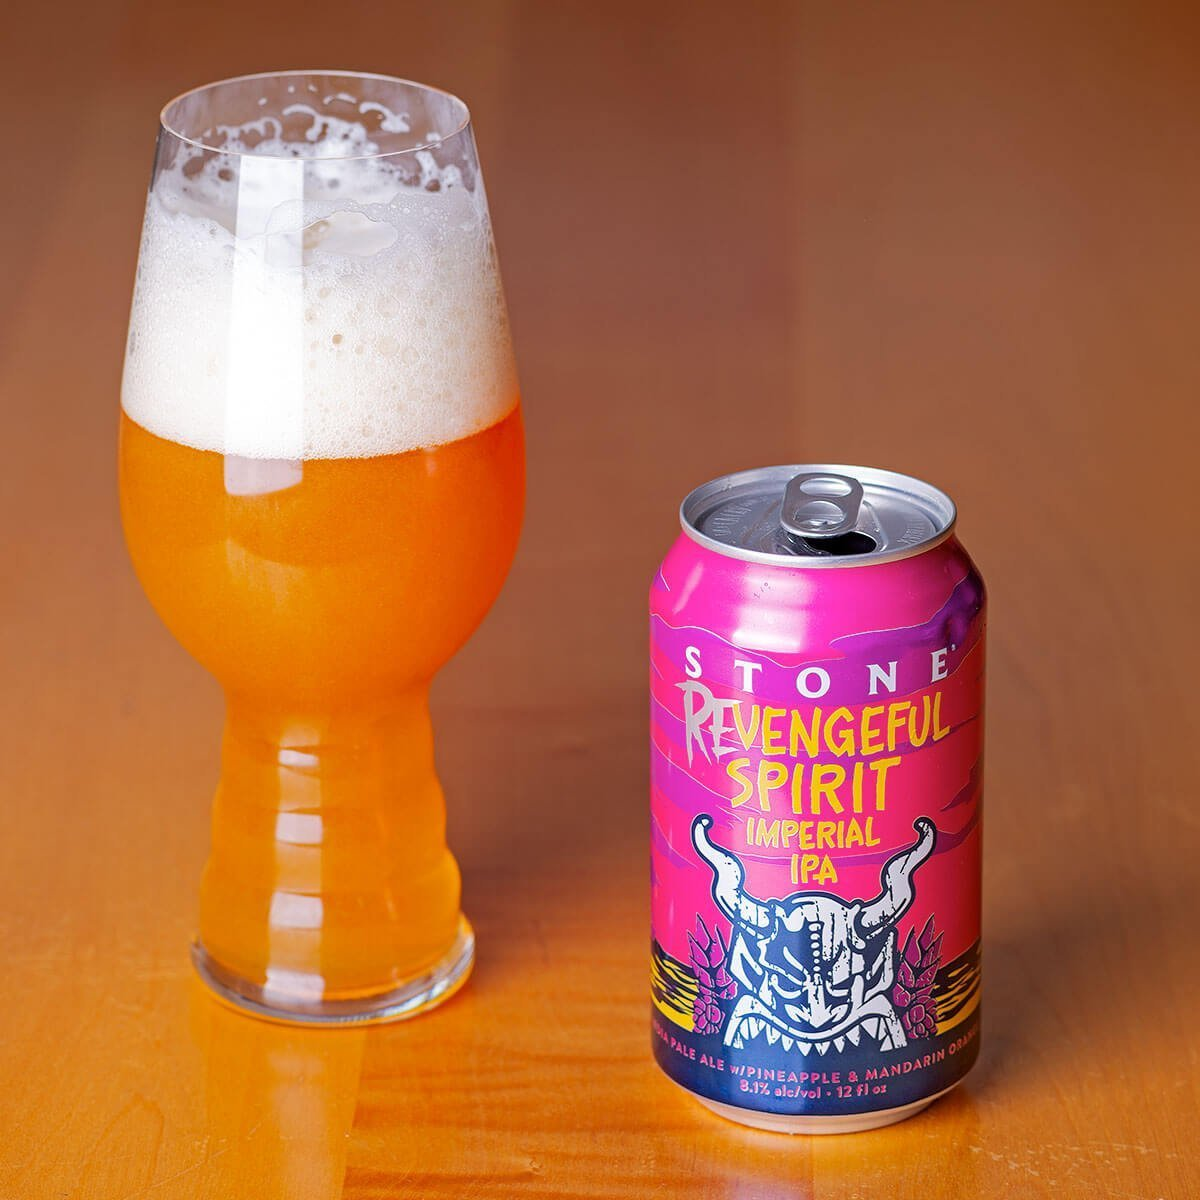 The Revengeful Spirit Imperial IPA is an American Double IPA by Stone Brewing that blends tropical fruit with extra hops and booze.